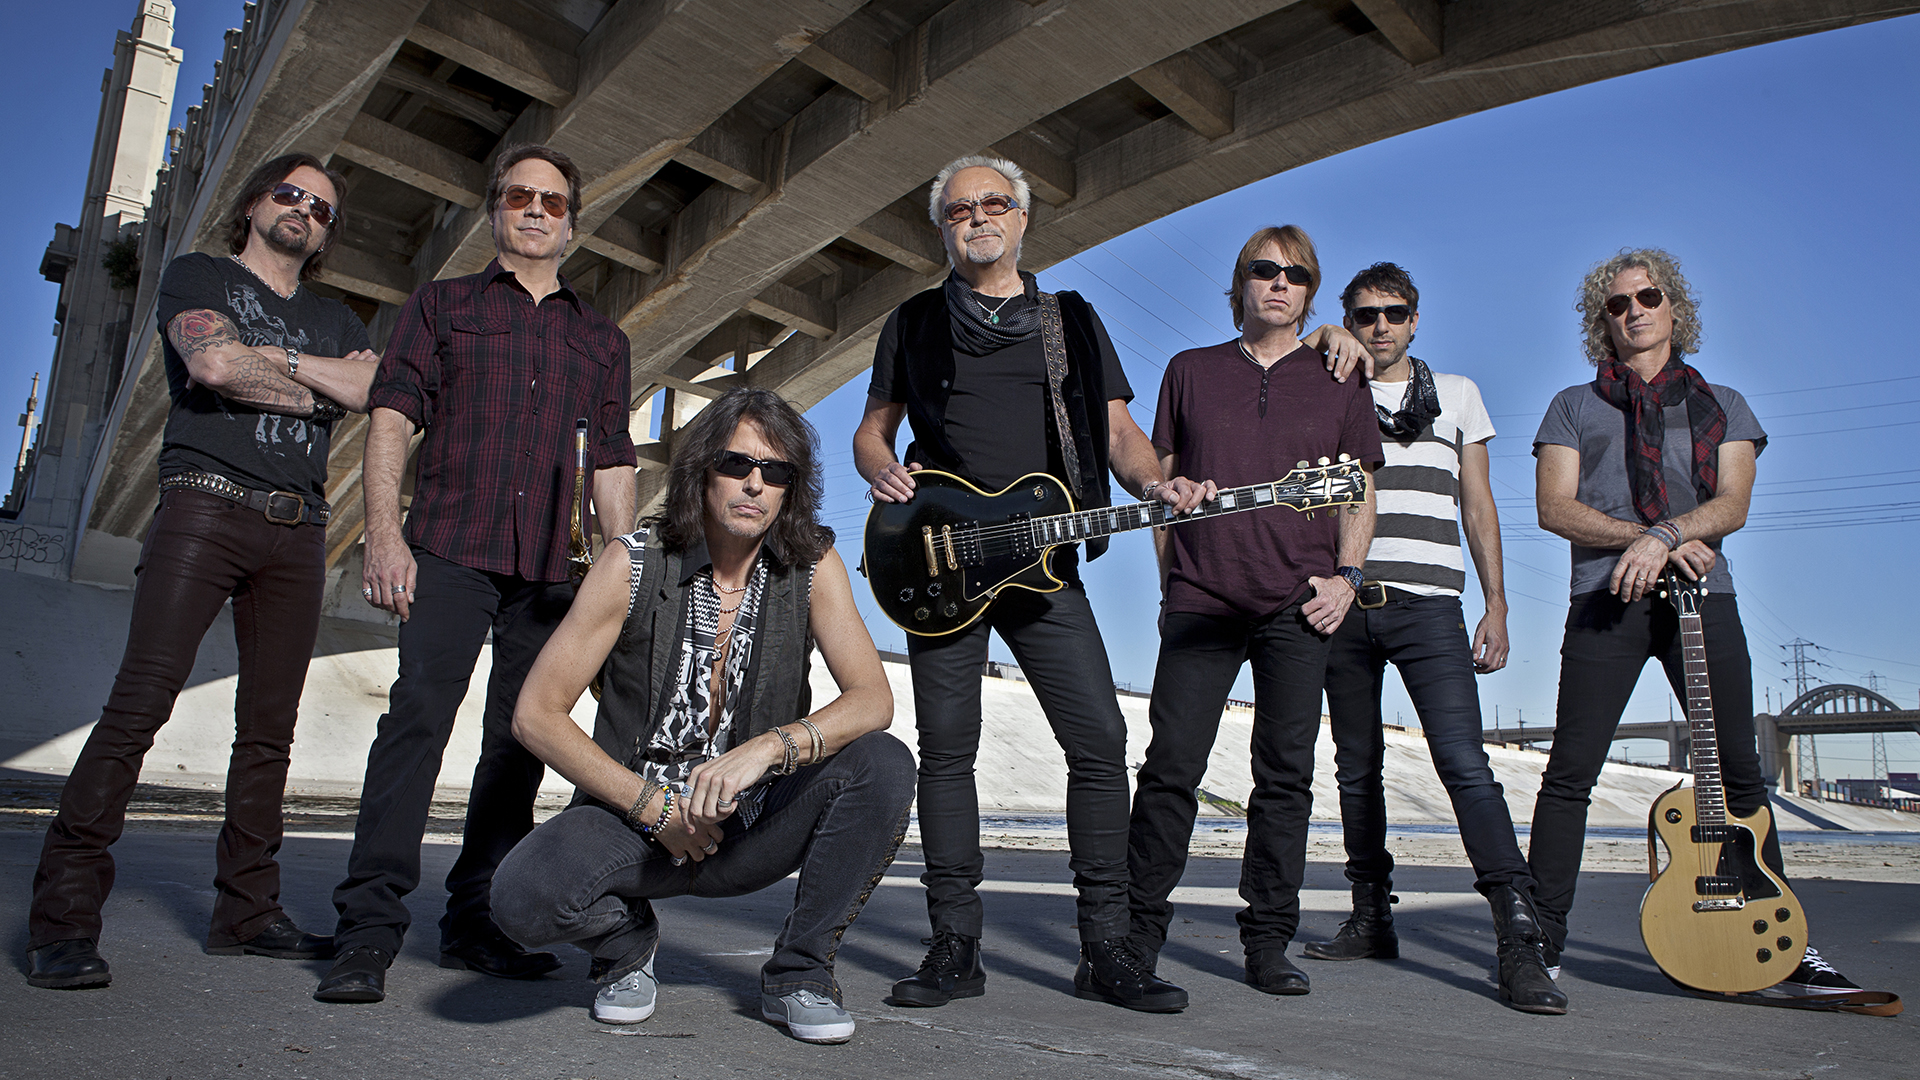 Why Foreigner's Tom Gimbel may be having more fun than anyone else in the rock band